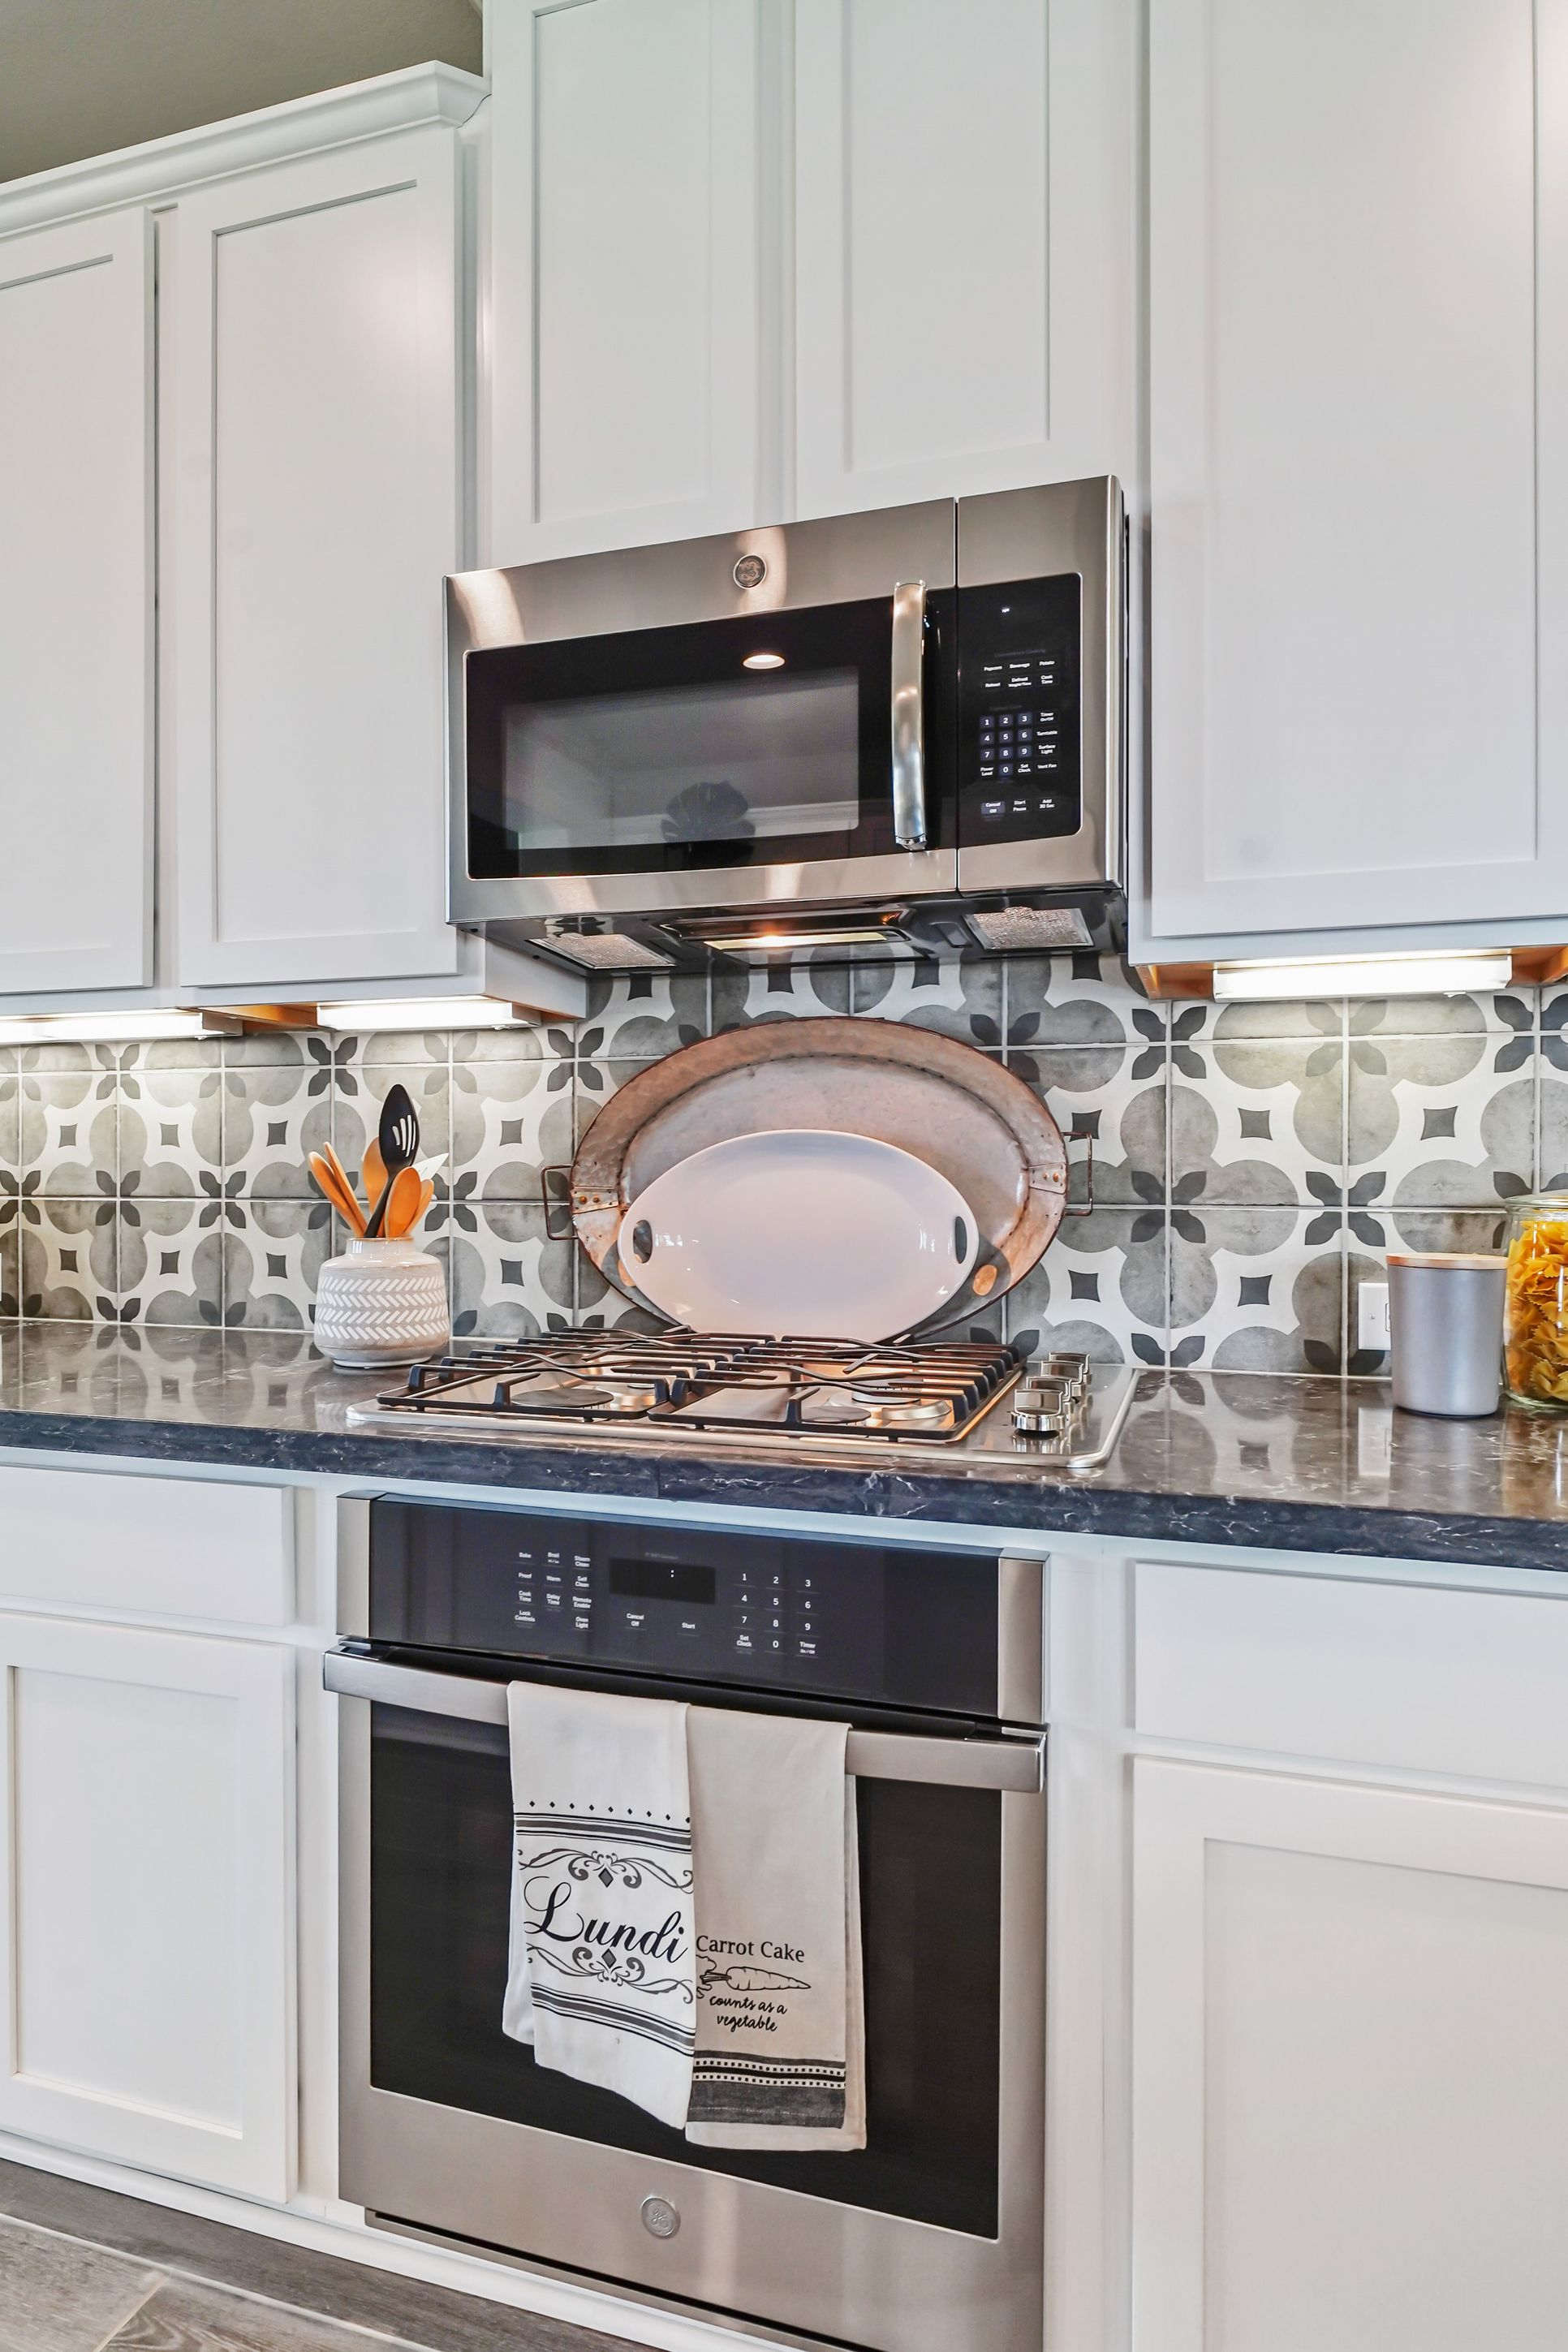 Interior:Kitchen with stainless appliances